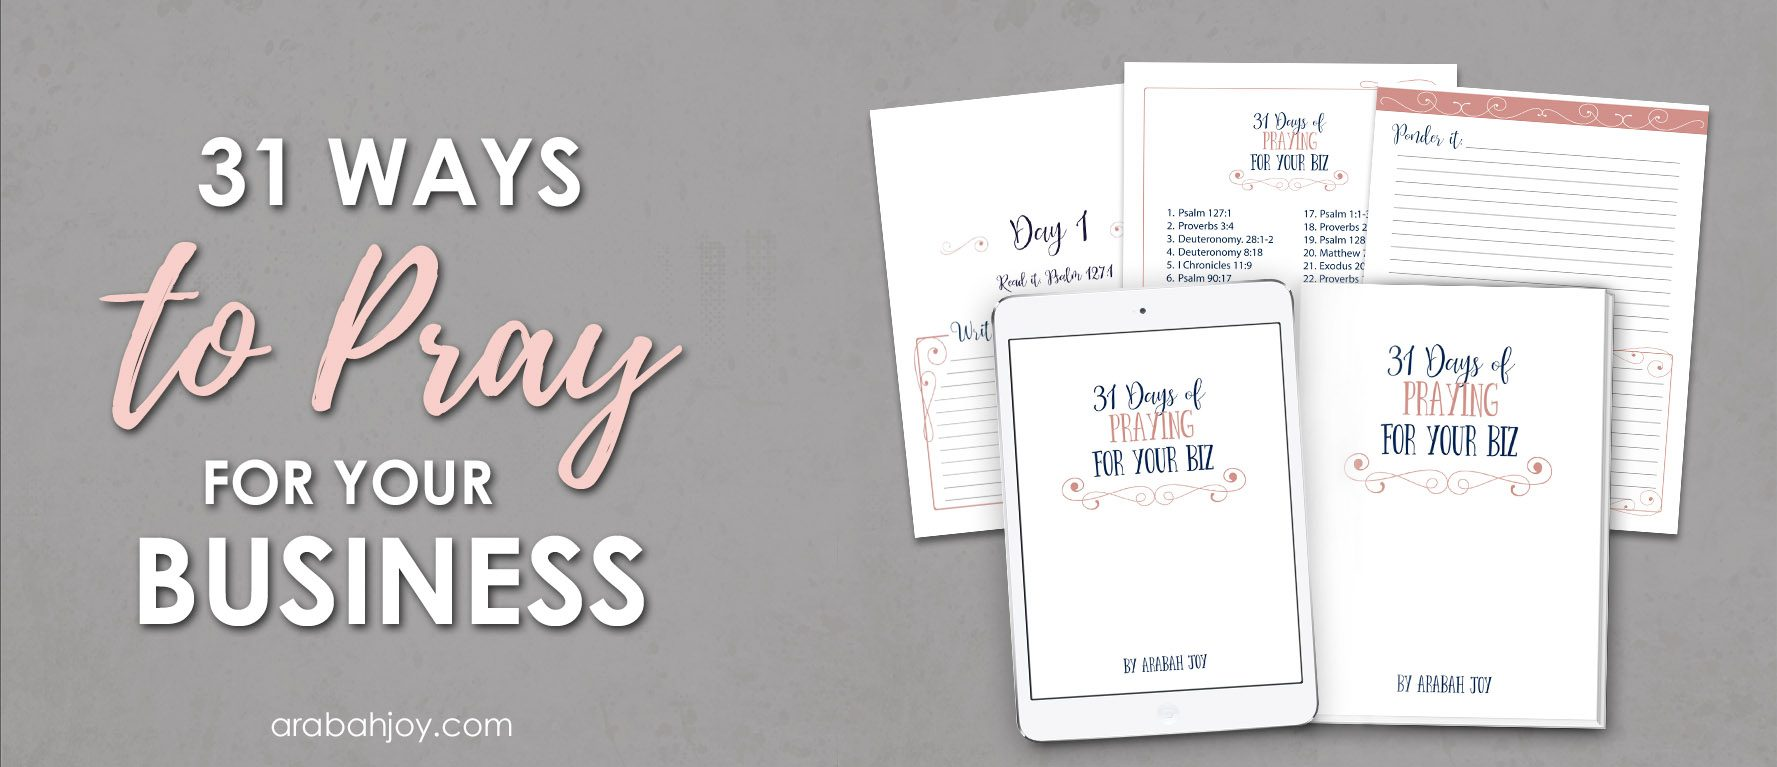 How to Pray for Your Business: Best Scriptures to pray! Join us for this 31 Day Challenge and Pray Scripture for Your Business!